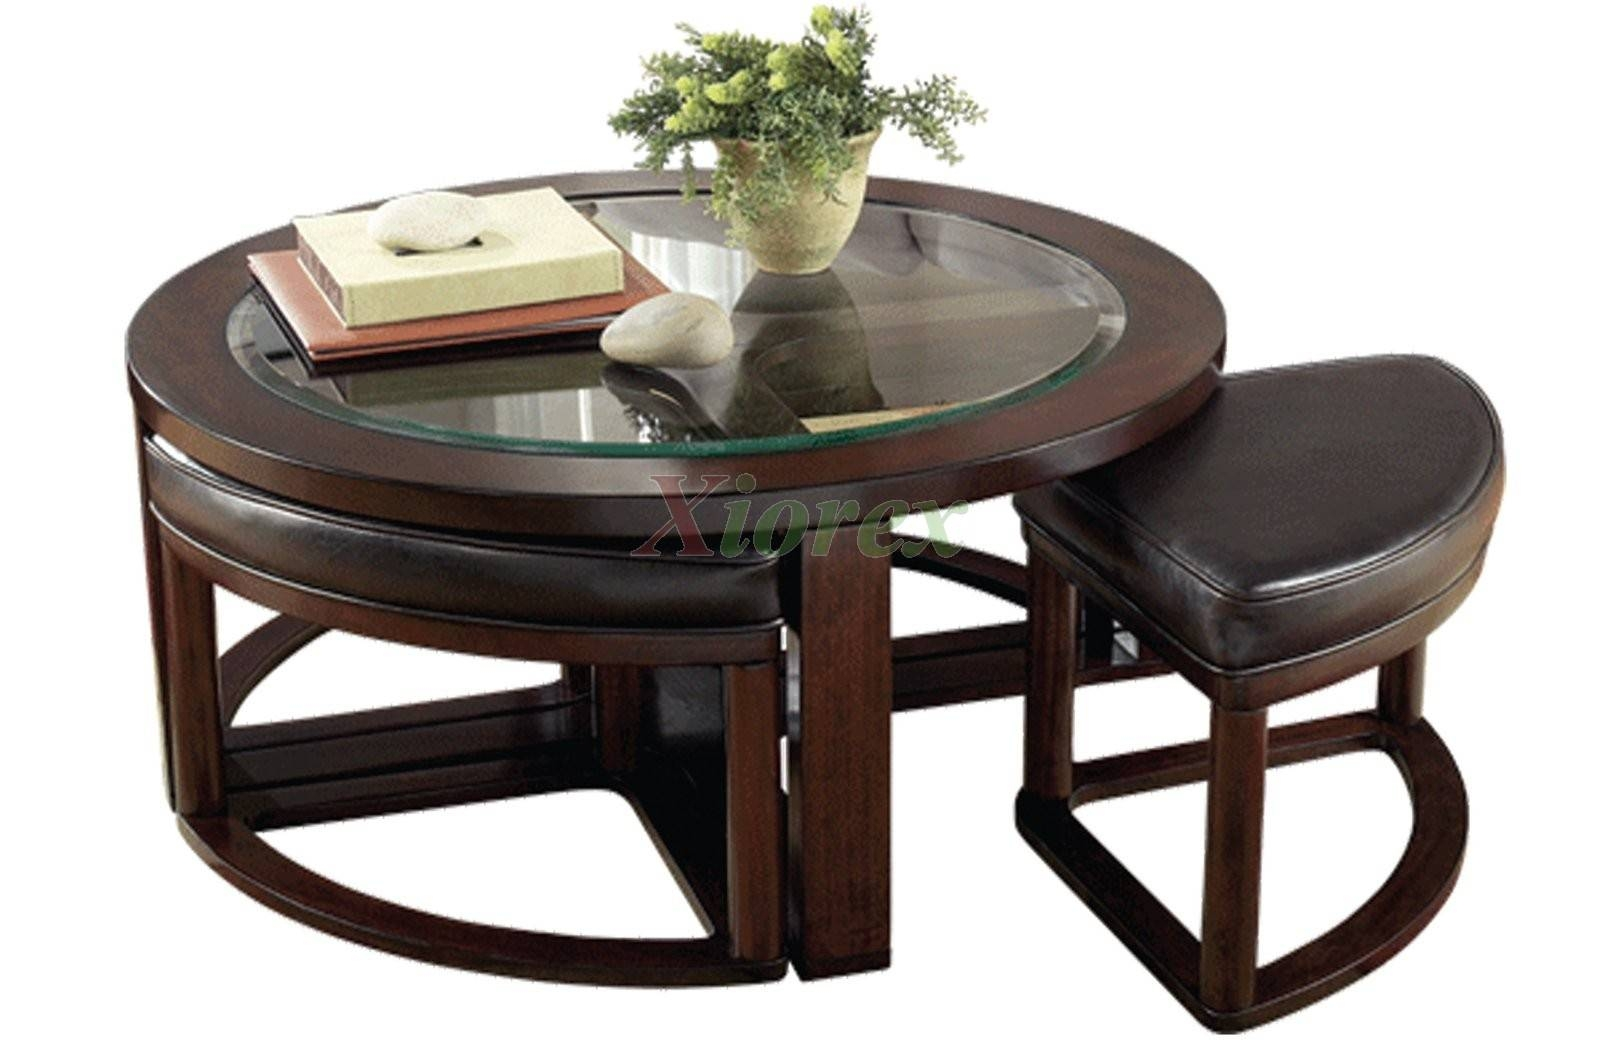 Coffee Table With Rounded Edges - Starrkingschool throughout Coffee Tables With Rounded Corners (Image 8 of 30)